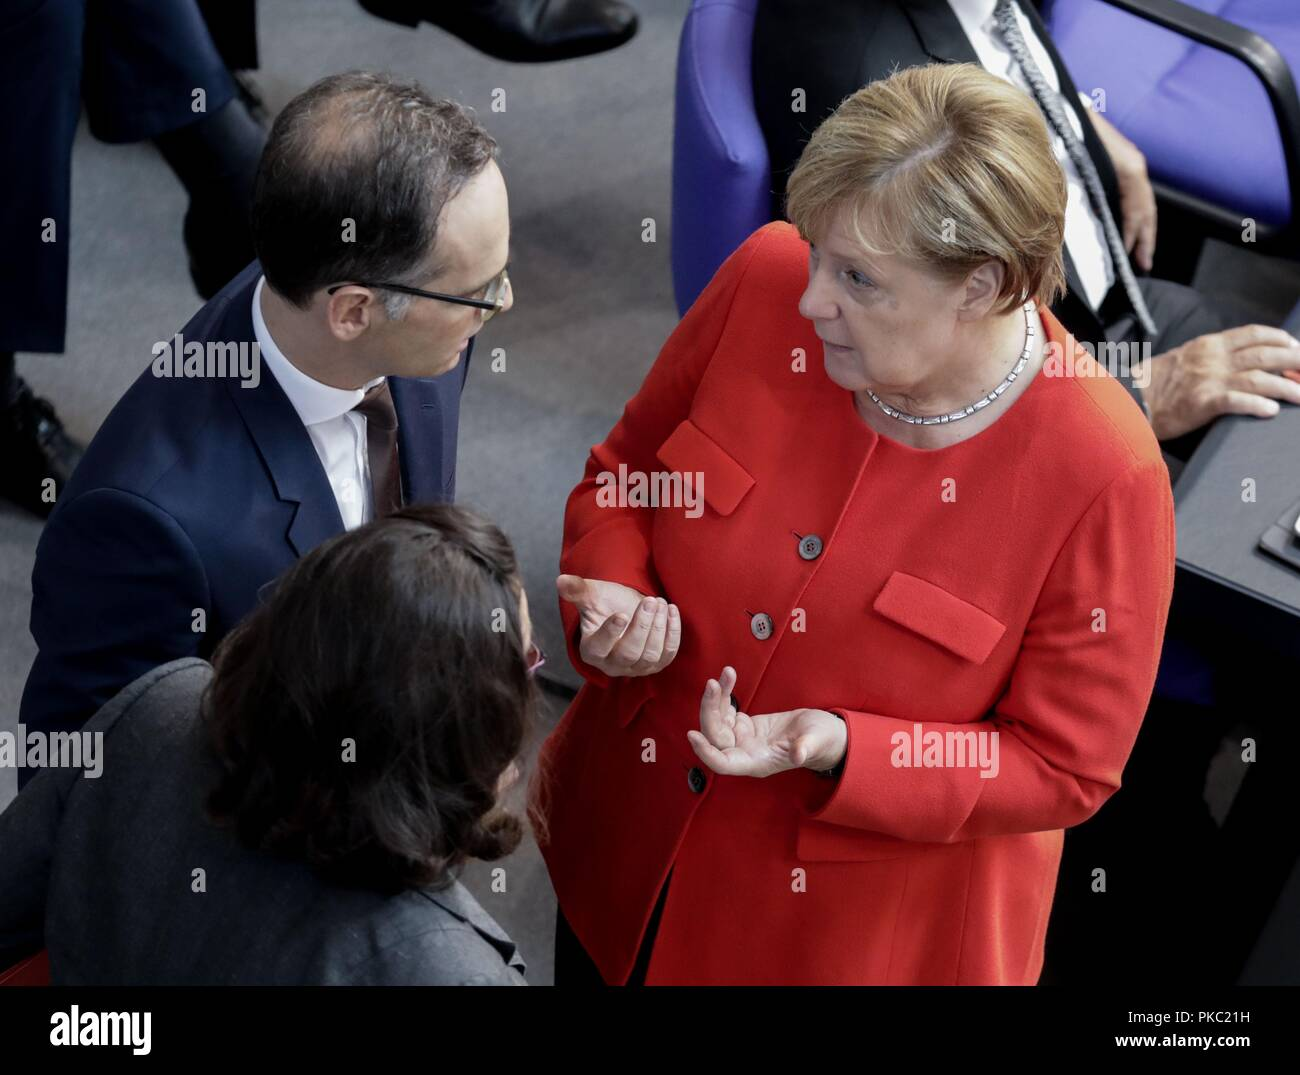 Berlin, Germany. 12th Sep, 2018. Chancellor Angela Merkel (CDU) will address the general debate in the German Bundestag with Andrea Nahles (M), SPD faction leader and SPD party leader, and Heiko Maas (l, SPD), Foreign Minister. The main topic of the 48th session of the 19th legislative period is the draft of the Federal Budget 2019 submitted by the Federal Government and the Federal Finance Plan 2018 to 2022 with the general debate on the budget of the Federal Chancellery. Photo: Kay Nietfeld/dpa - Stock Image